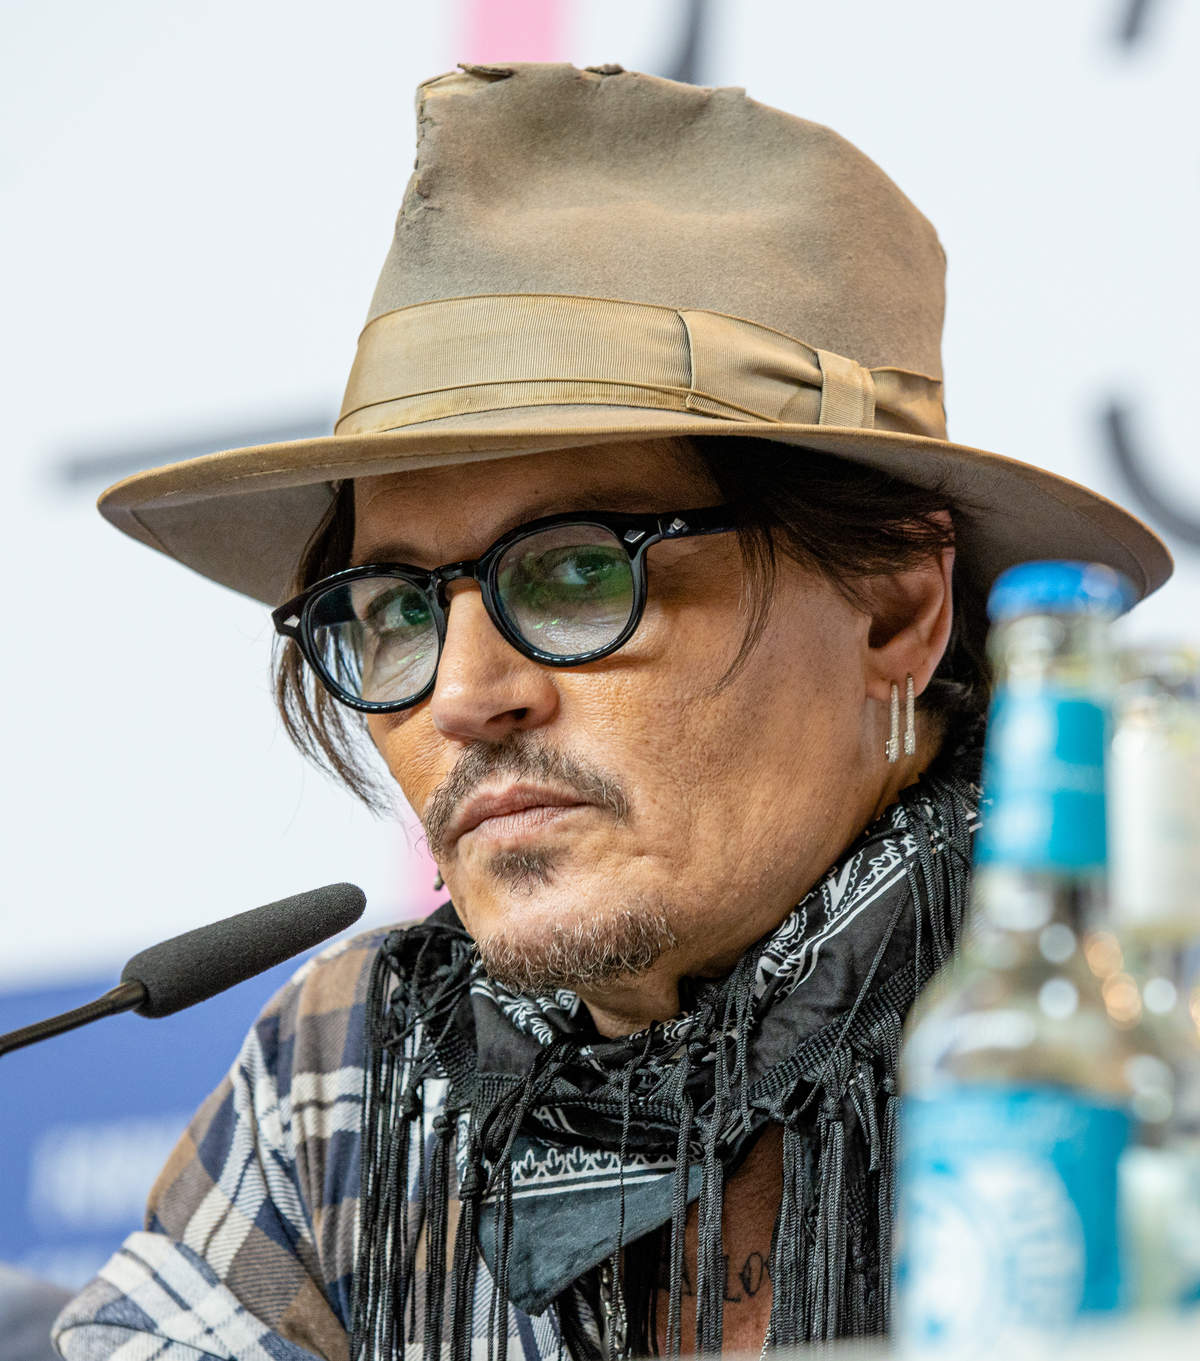 Johnny Depp / Foto: Harald Krichel via Wikimedia Commons